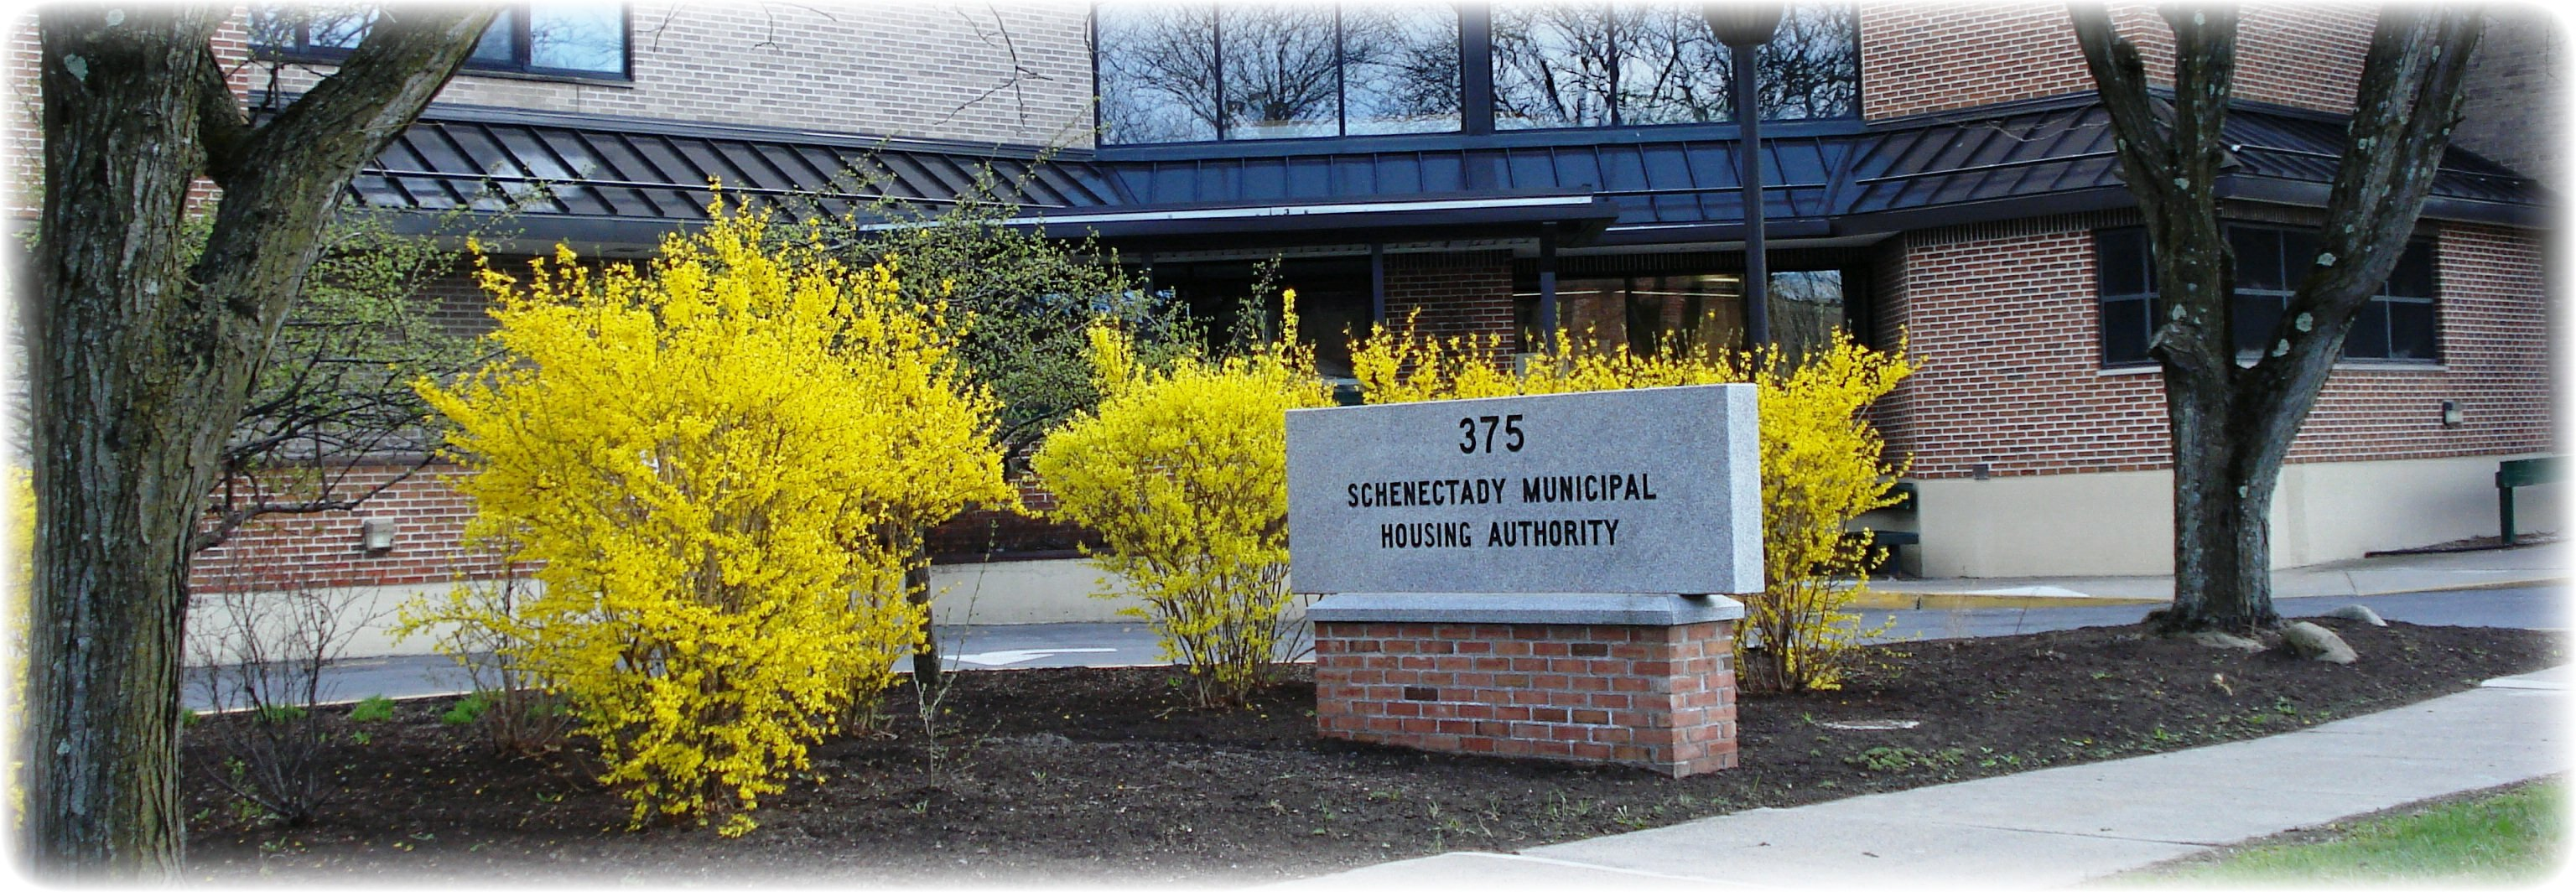 Schenectady Municipal Housing Authority (SMHA)